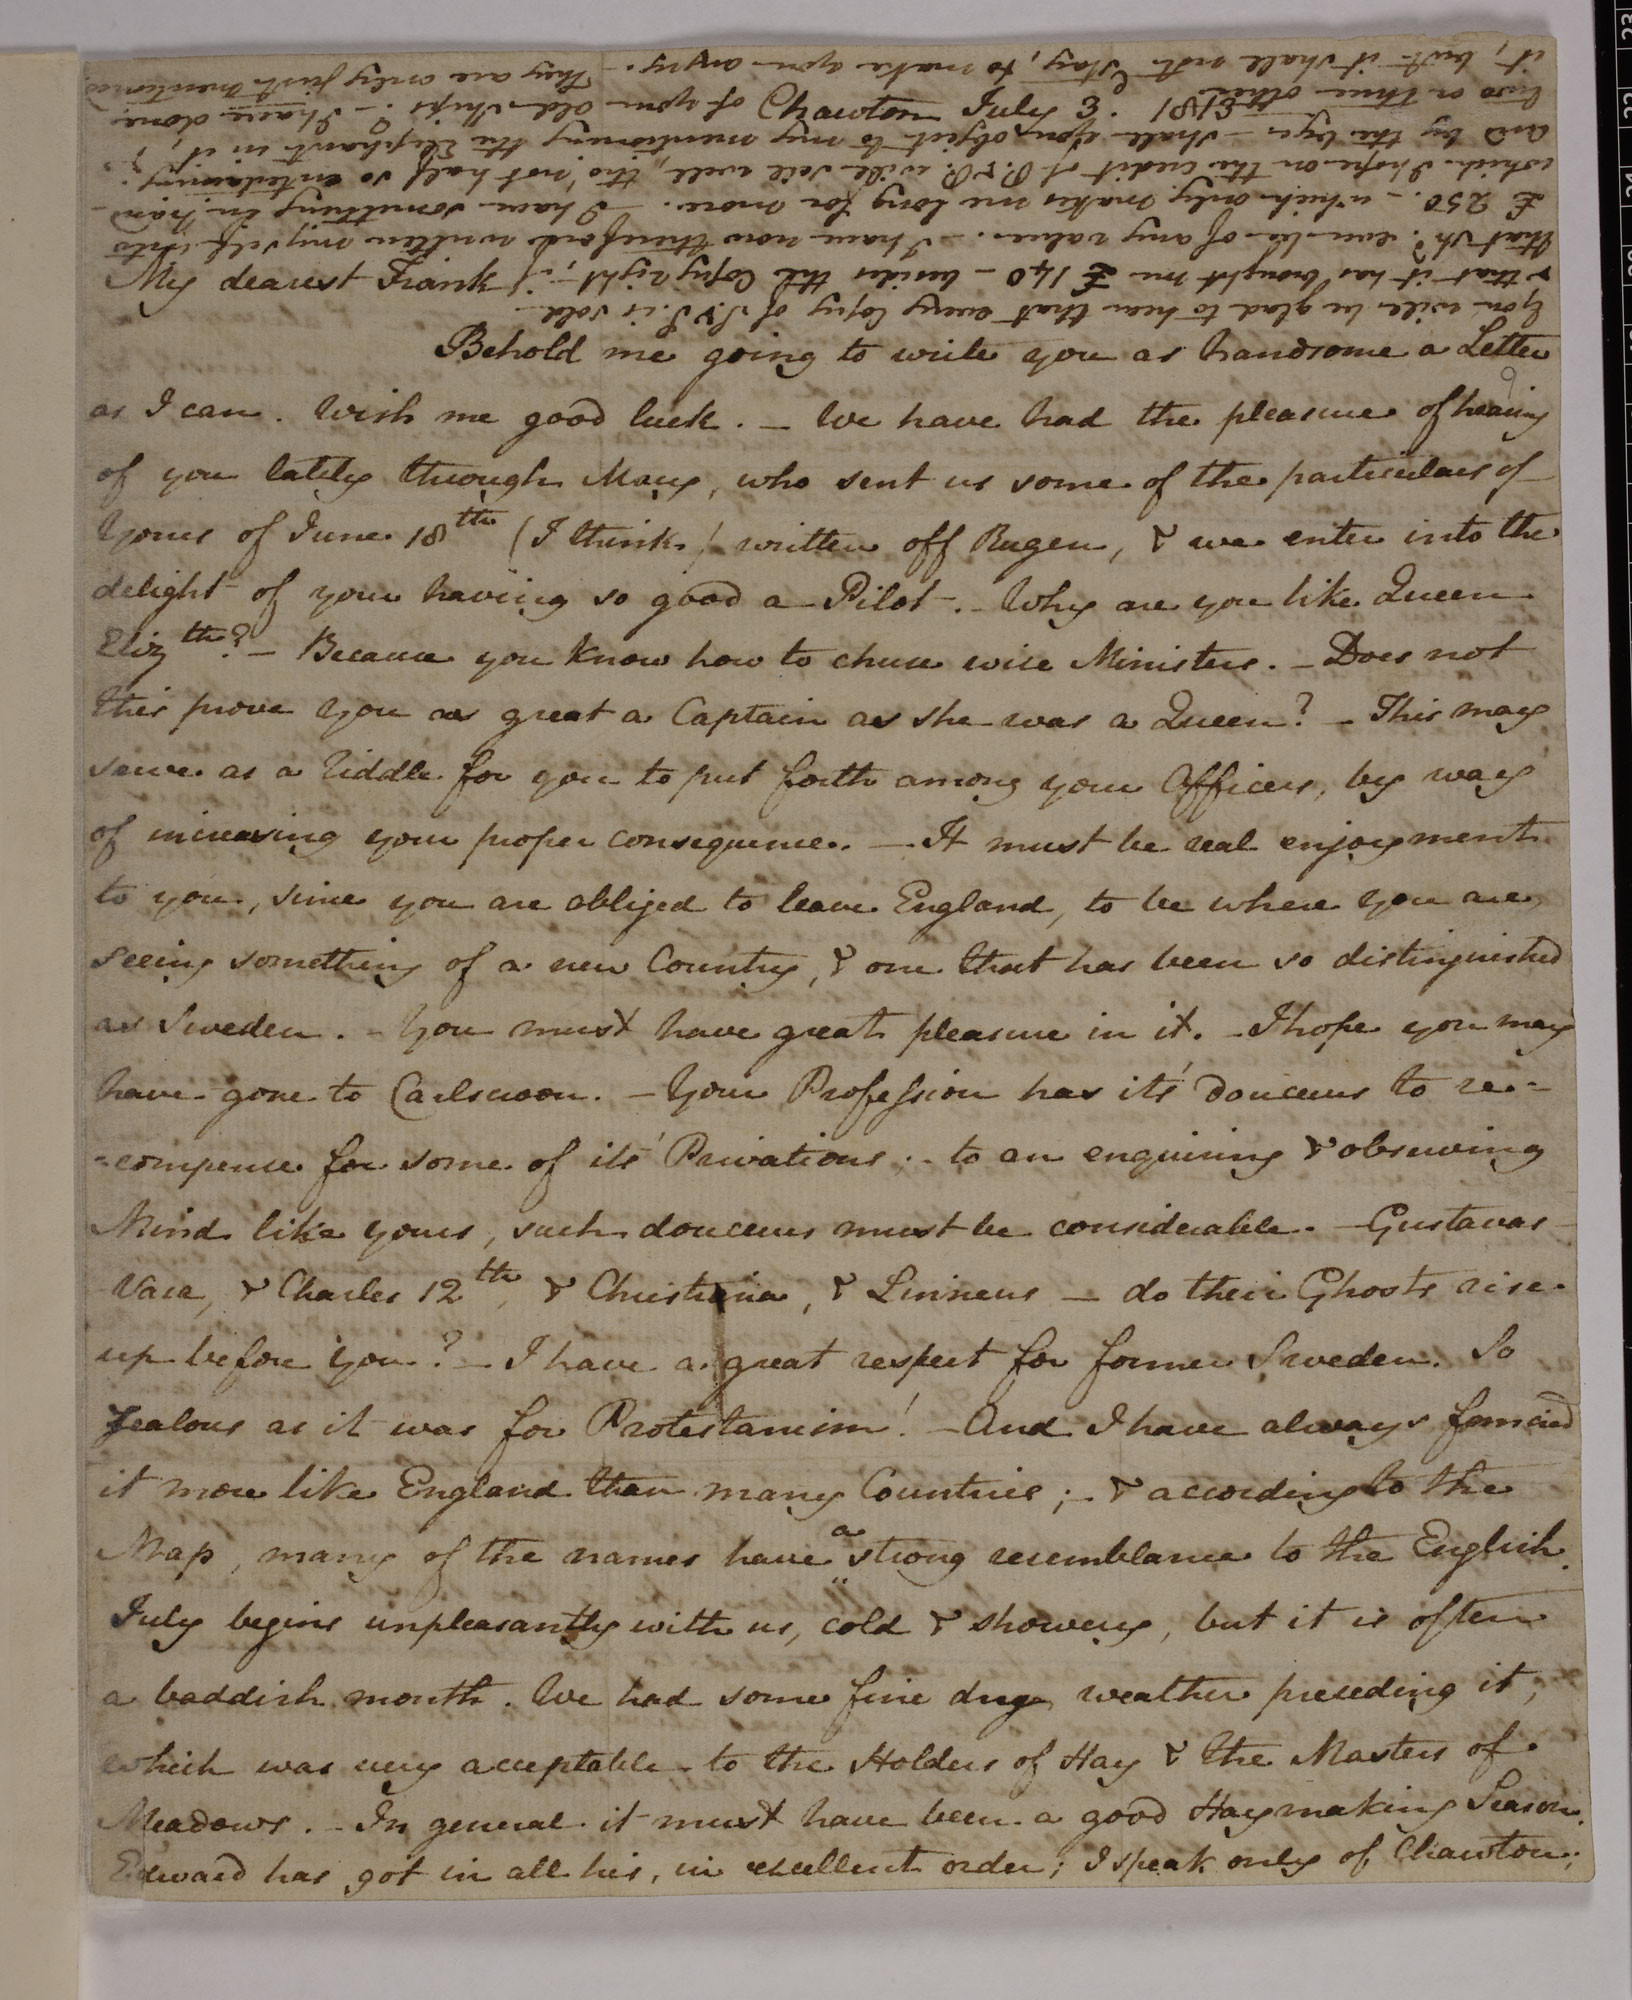 Letter from Jane Austen to her brother, 1809 [folio: f. 9r]